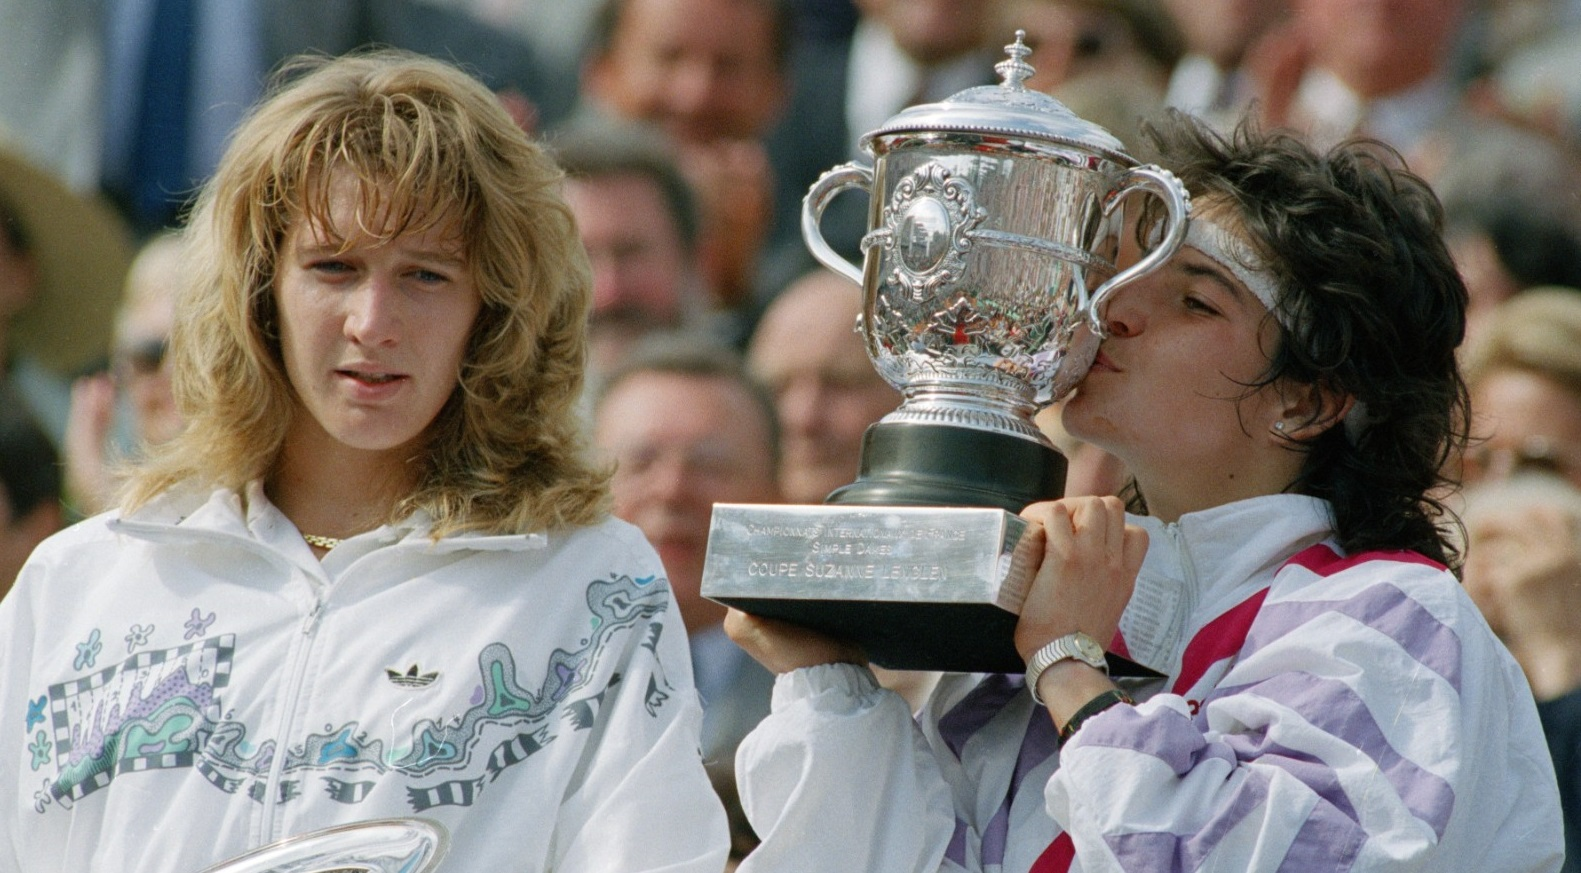 Images Steffi Graf Delightful meet the tennis champion who bested steffi graf at the french open